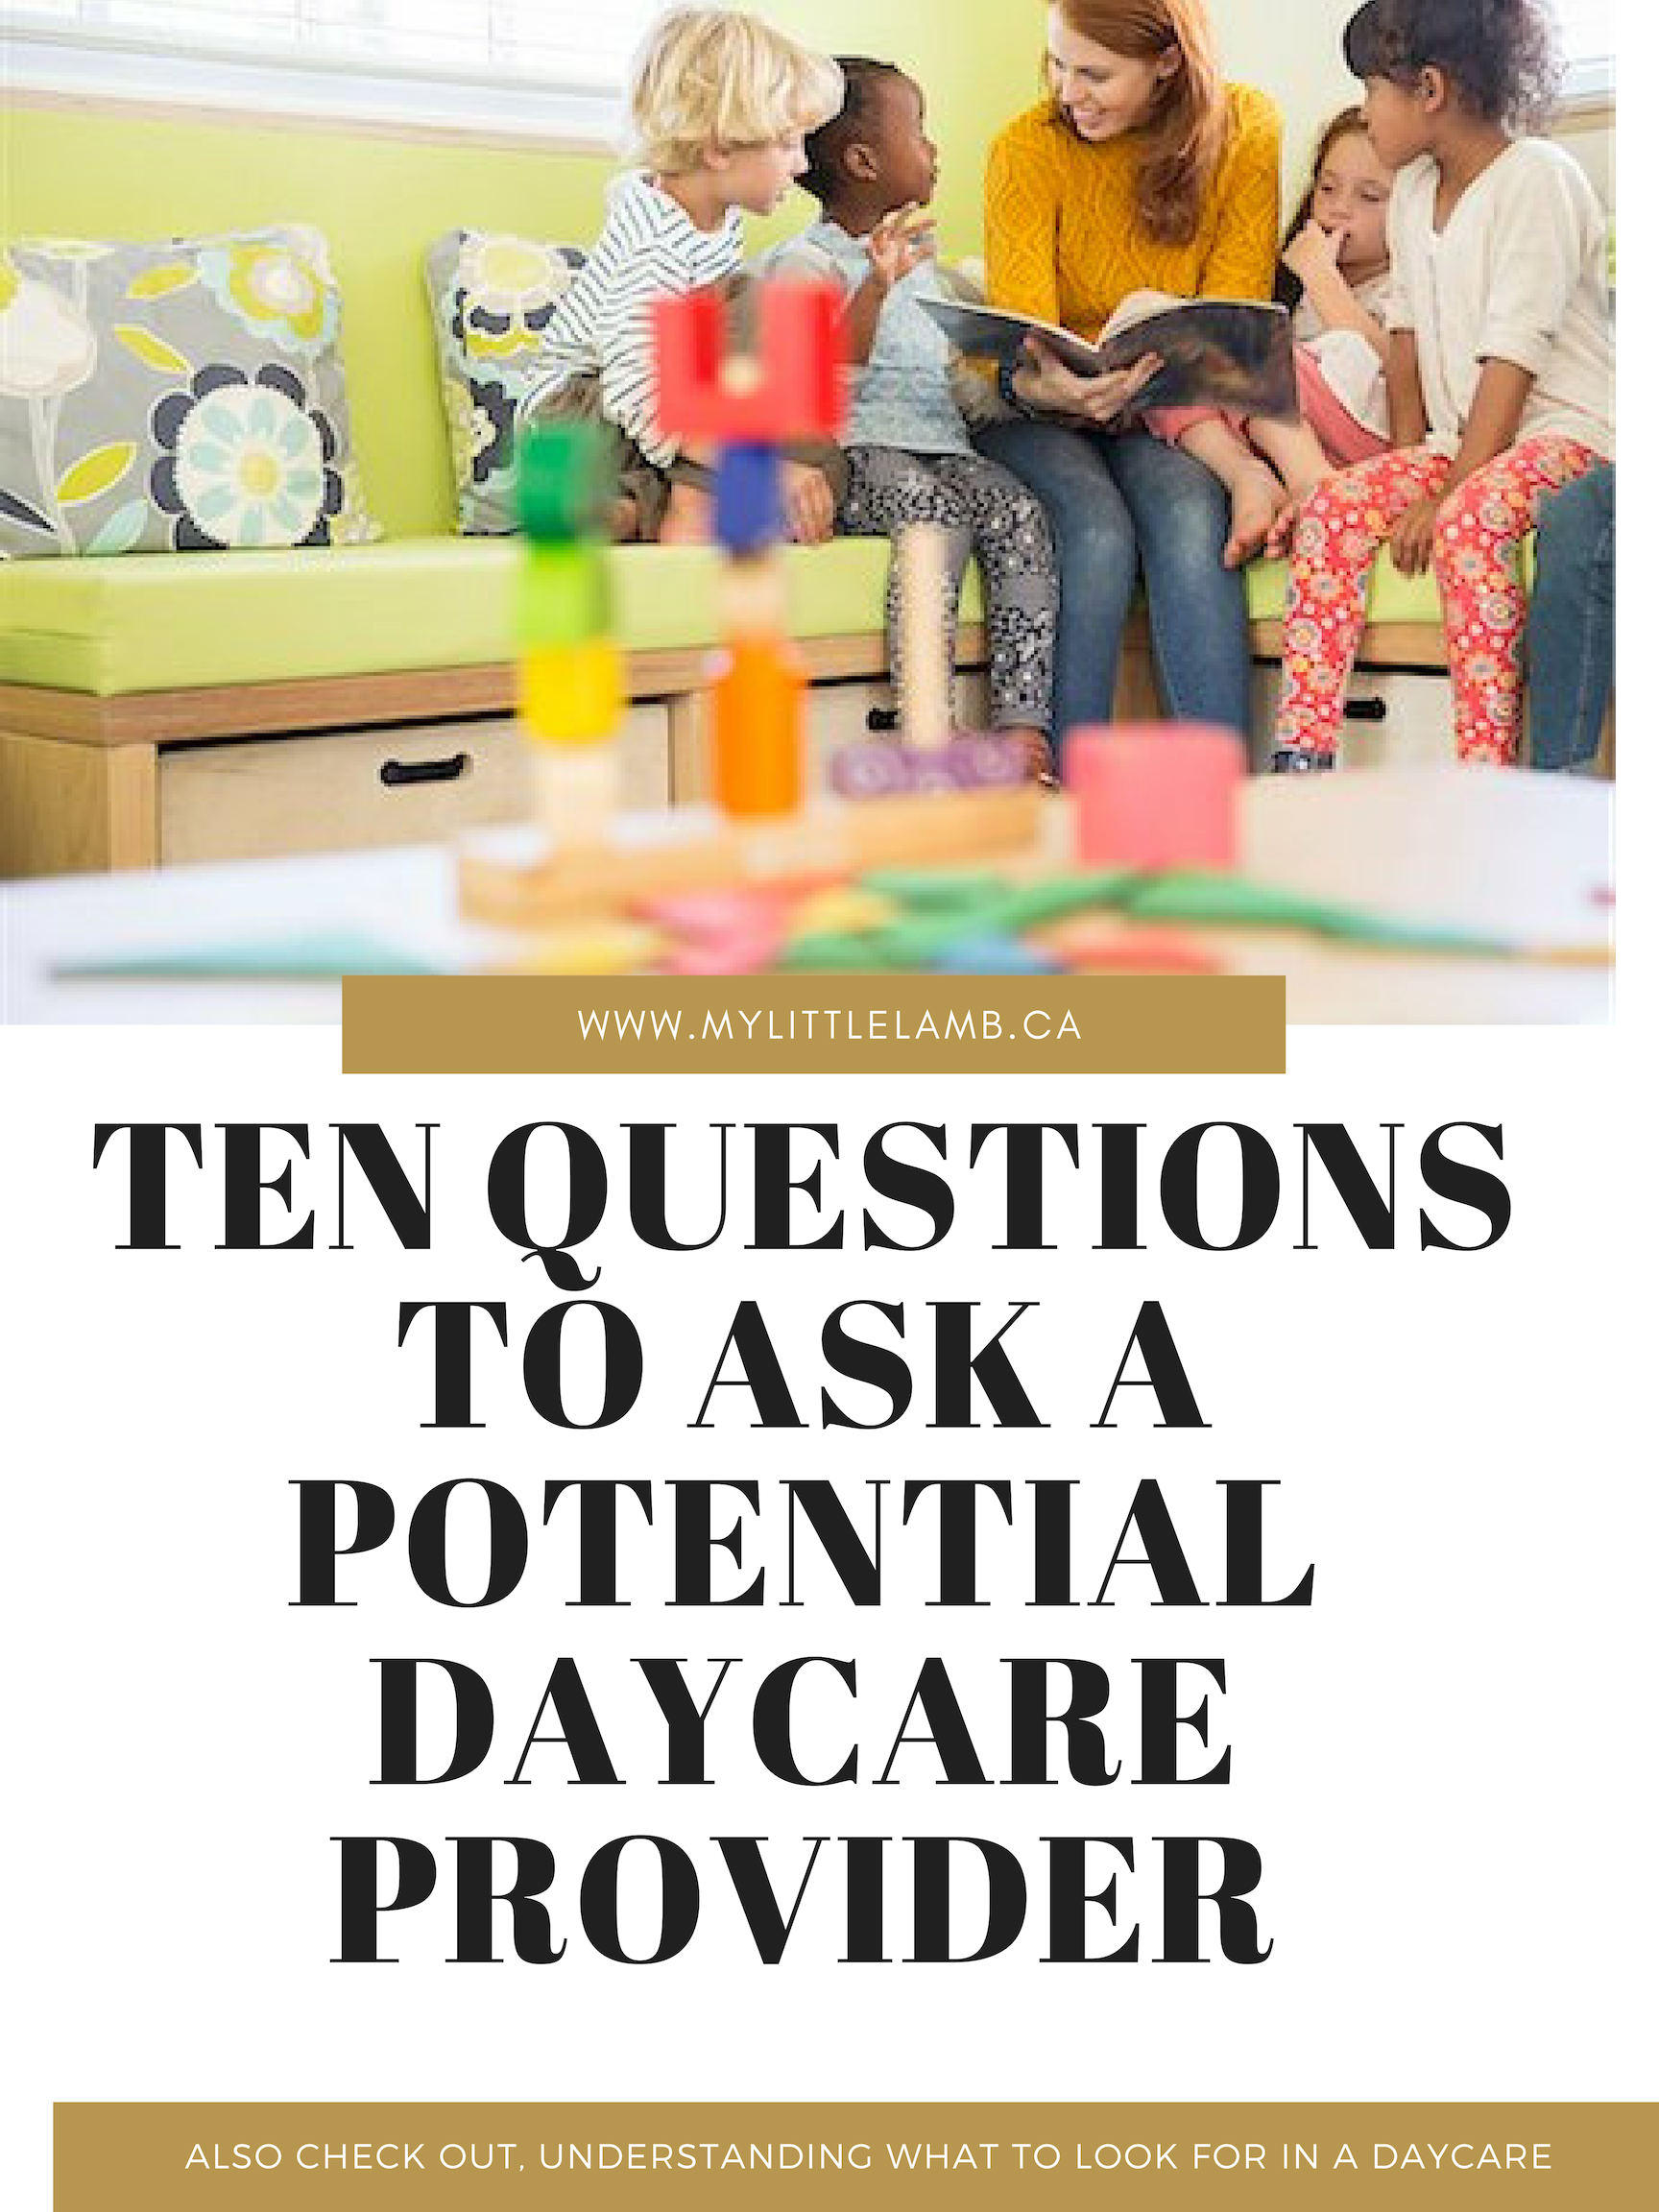 Ten questions to ask a potentional daycare provider picture